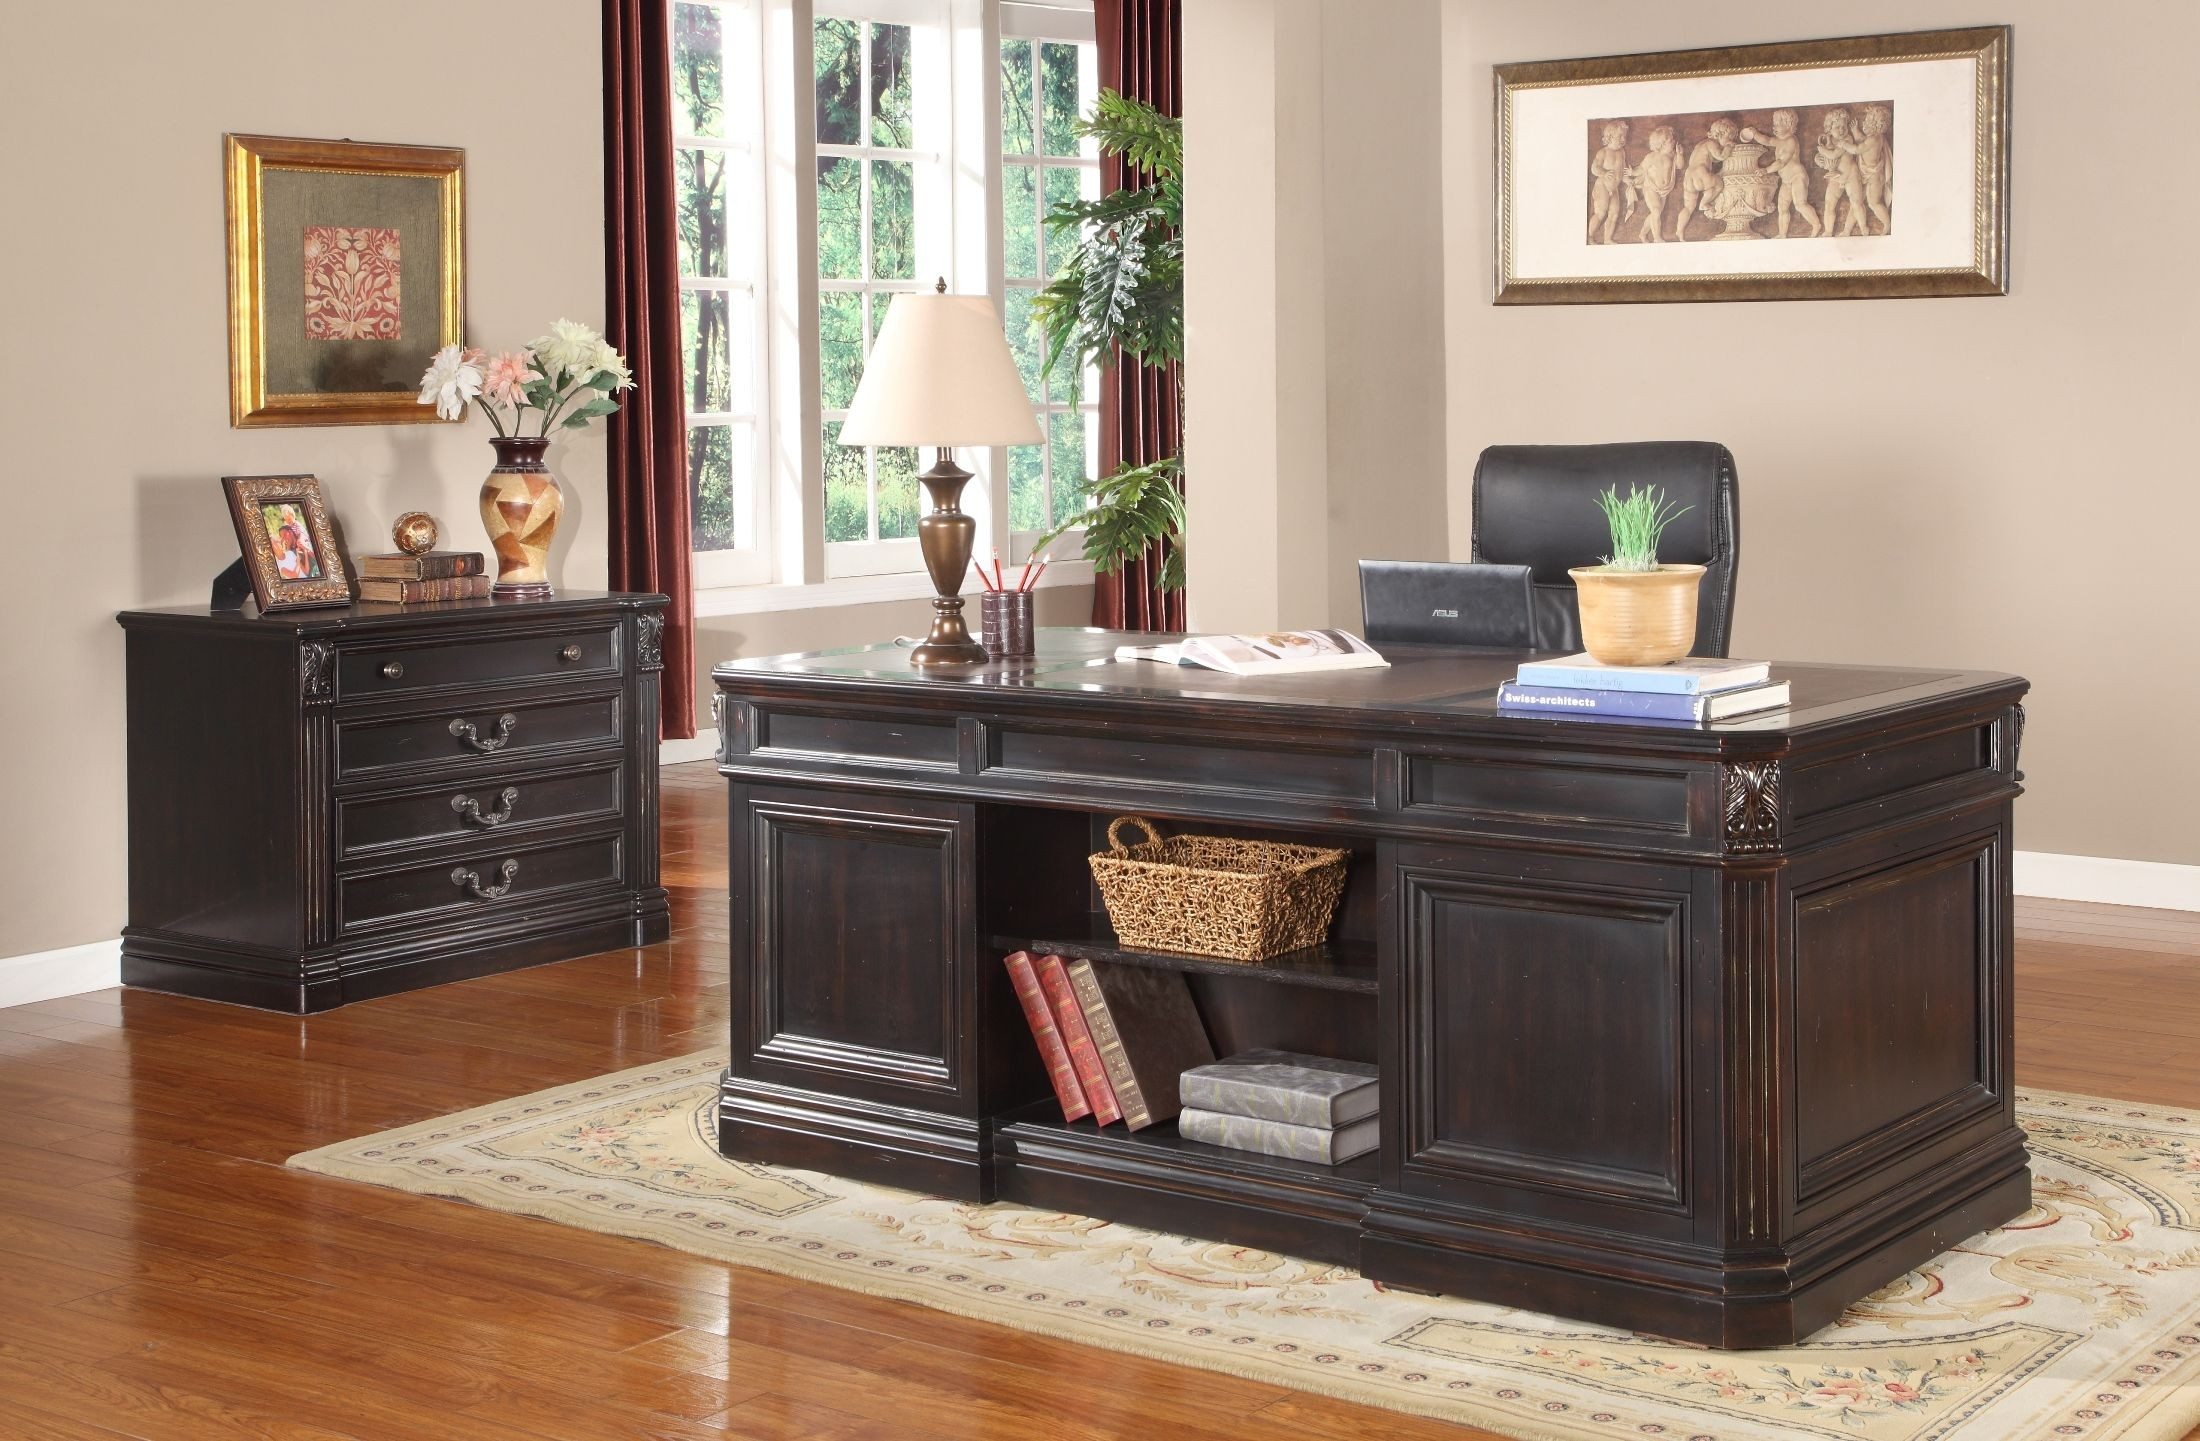 Grand Manor Palazzo Double Pedestal Executive Desk from